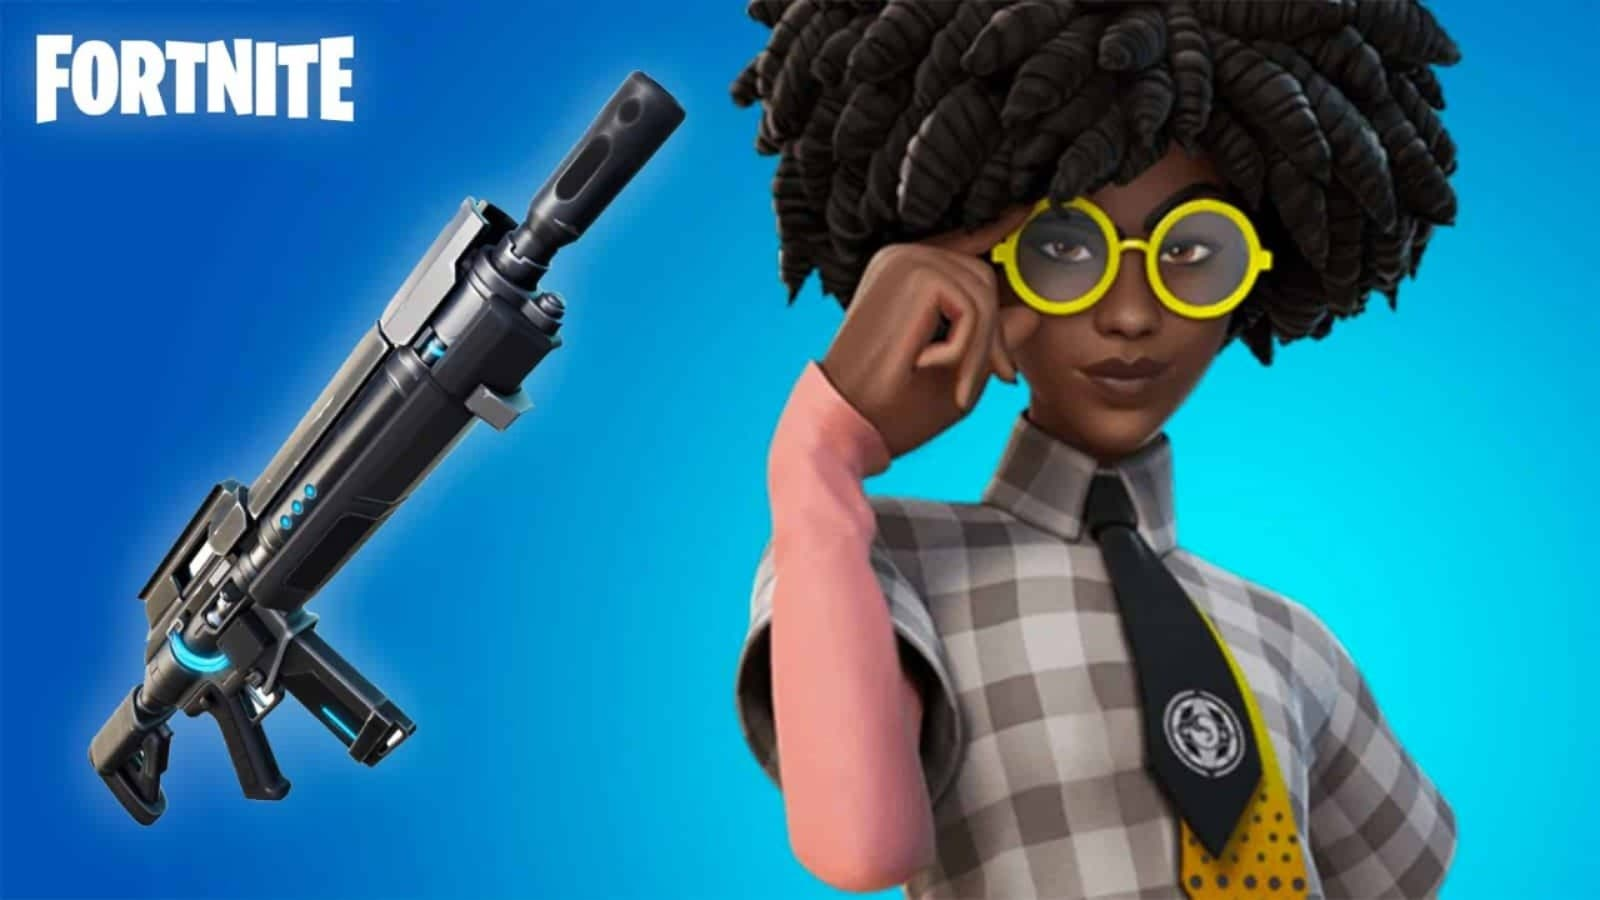 Fortnite Pulse Rifle Settings: All You Need to Know